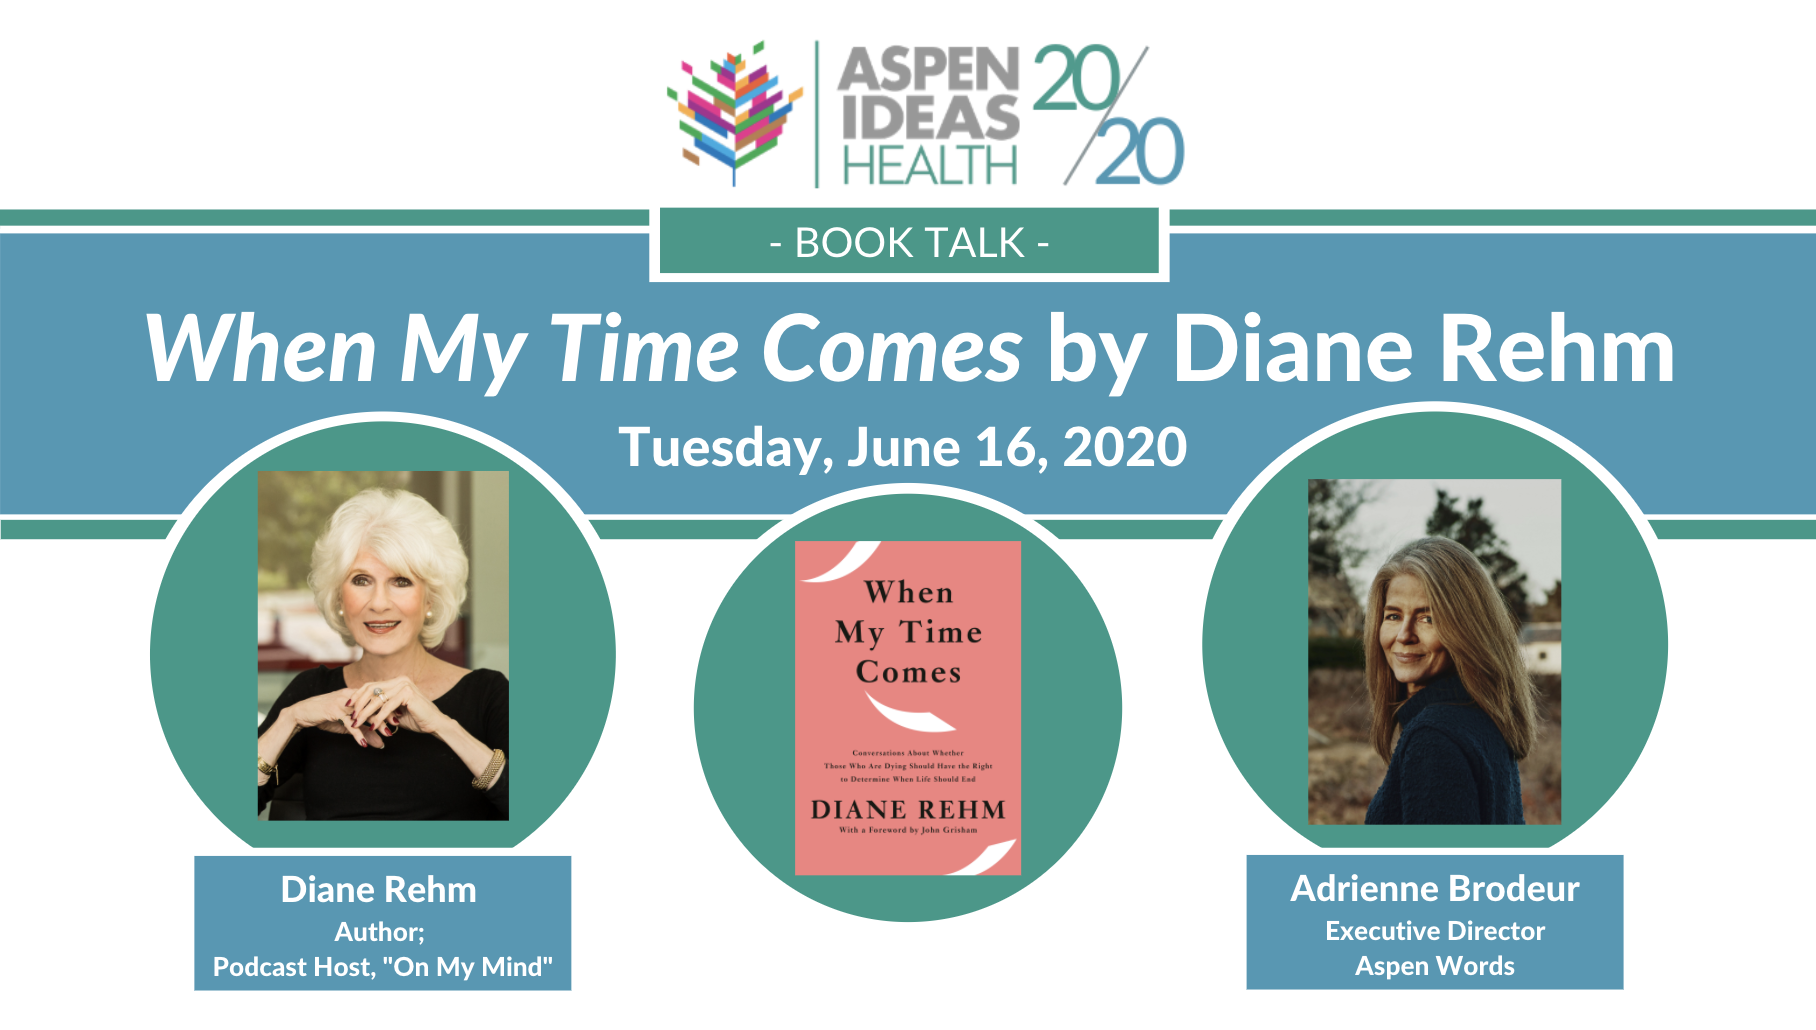 Diane Rehm: When My Time Comes